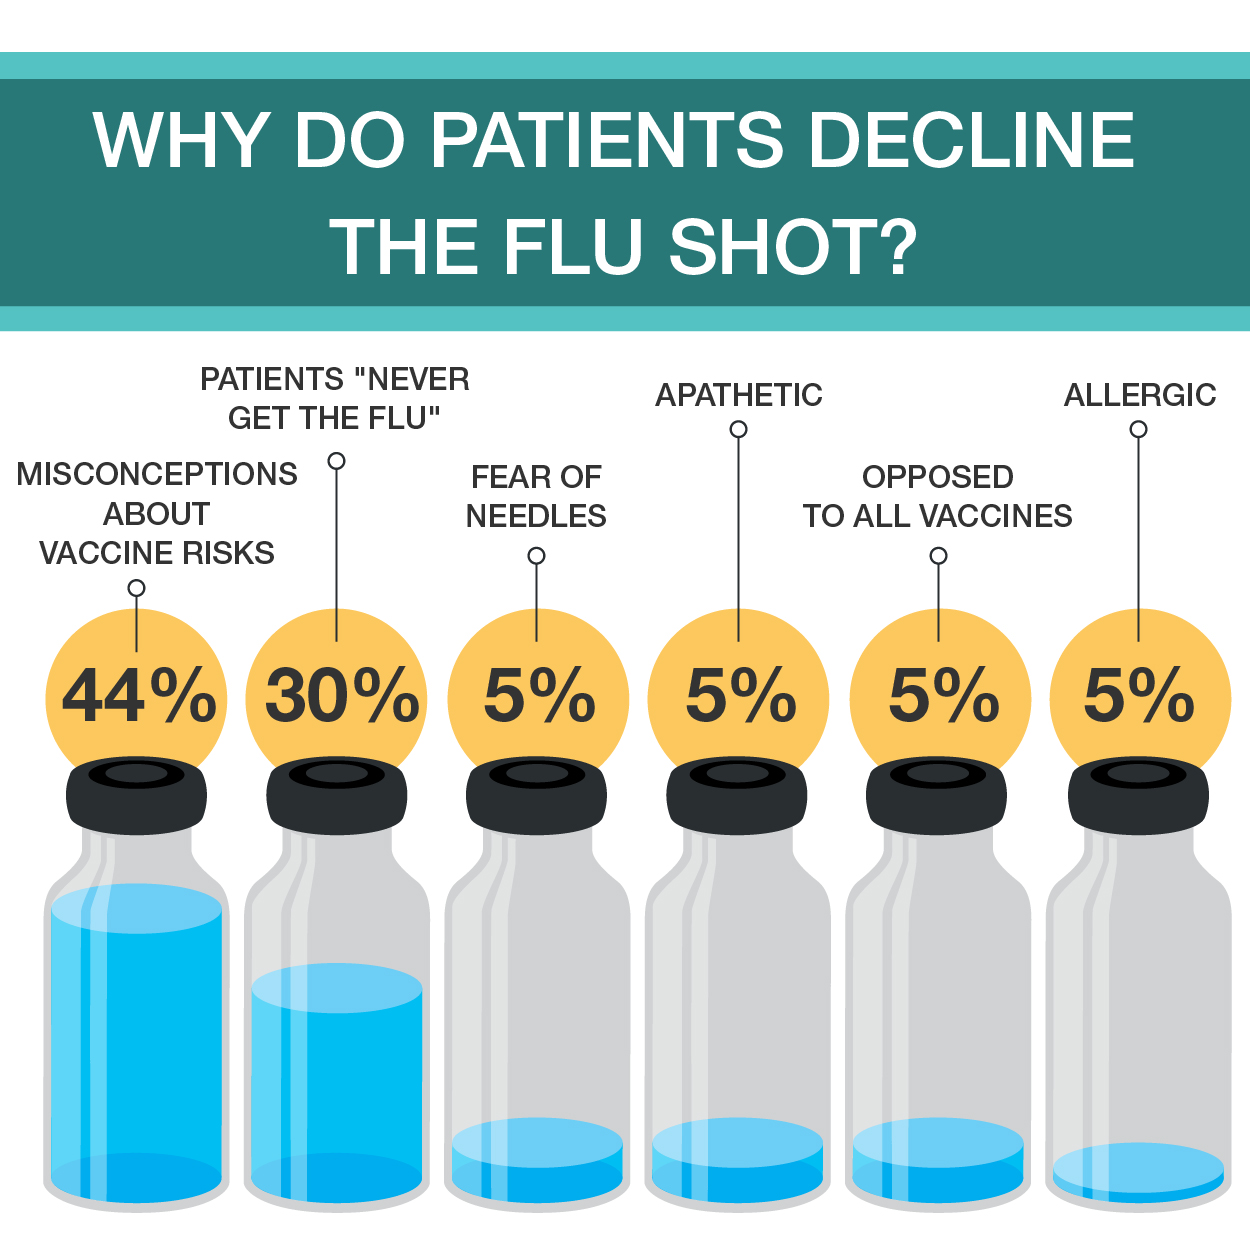 Doctors Respond Where Should Patients Receive Their Flu